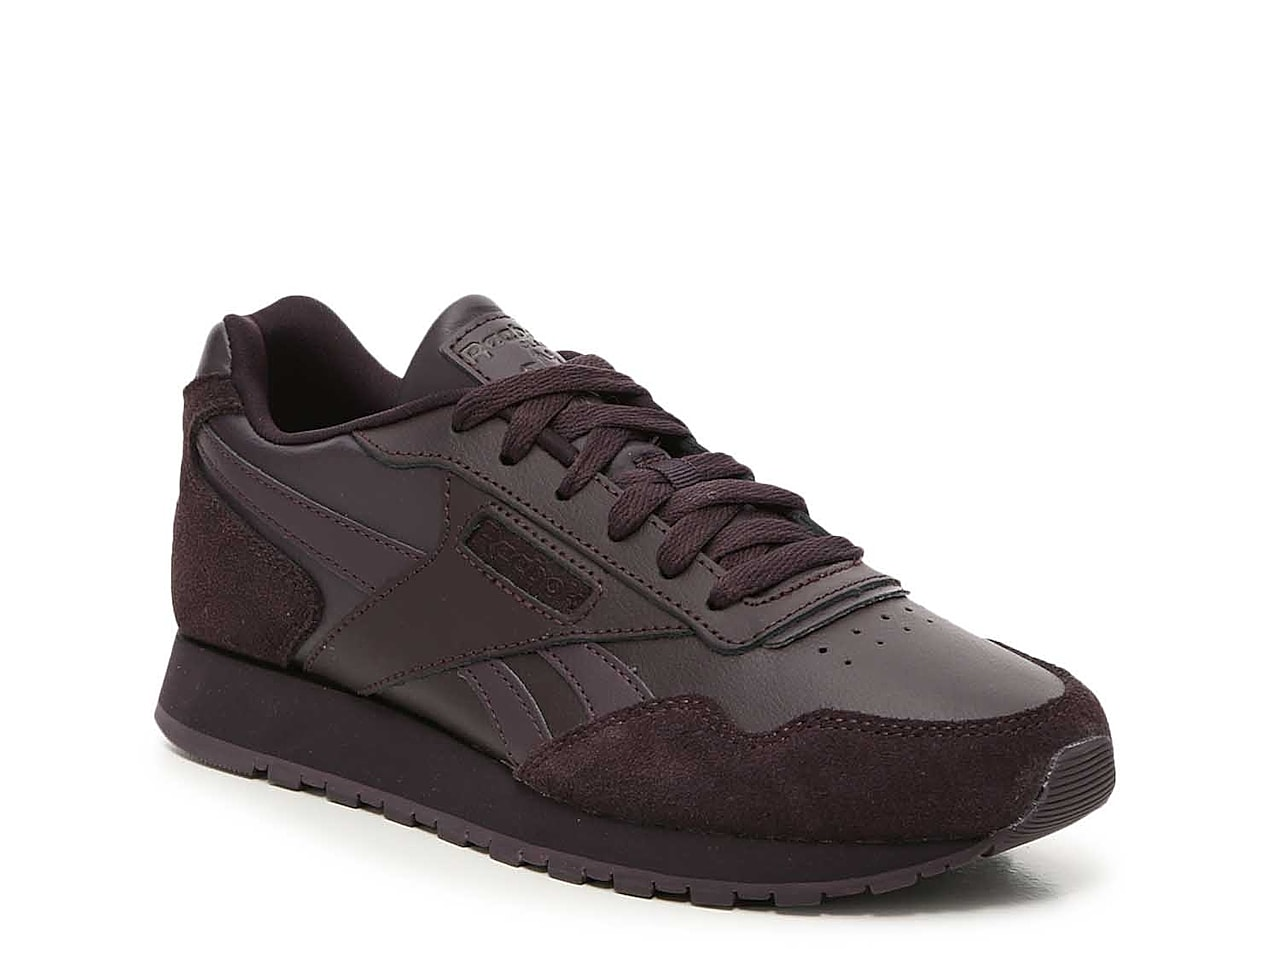 Harman Run Sneaker - Women's